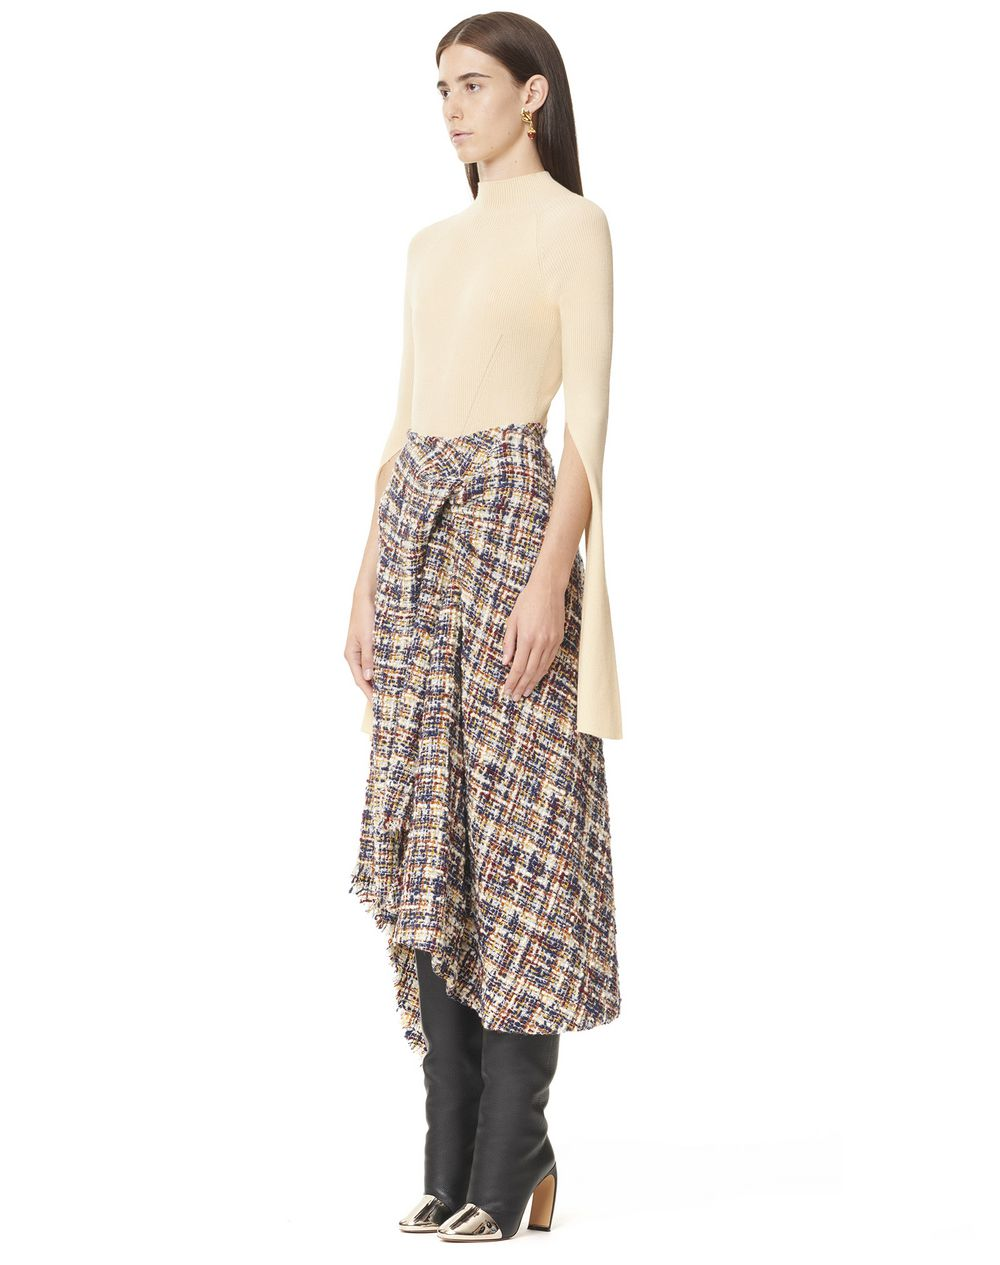 ASYMMETRIC WRAP SKIRT - Lanvin